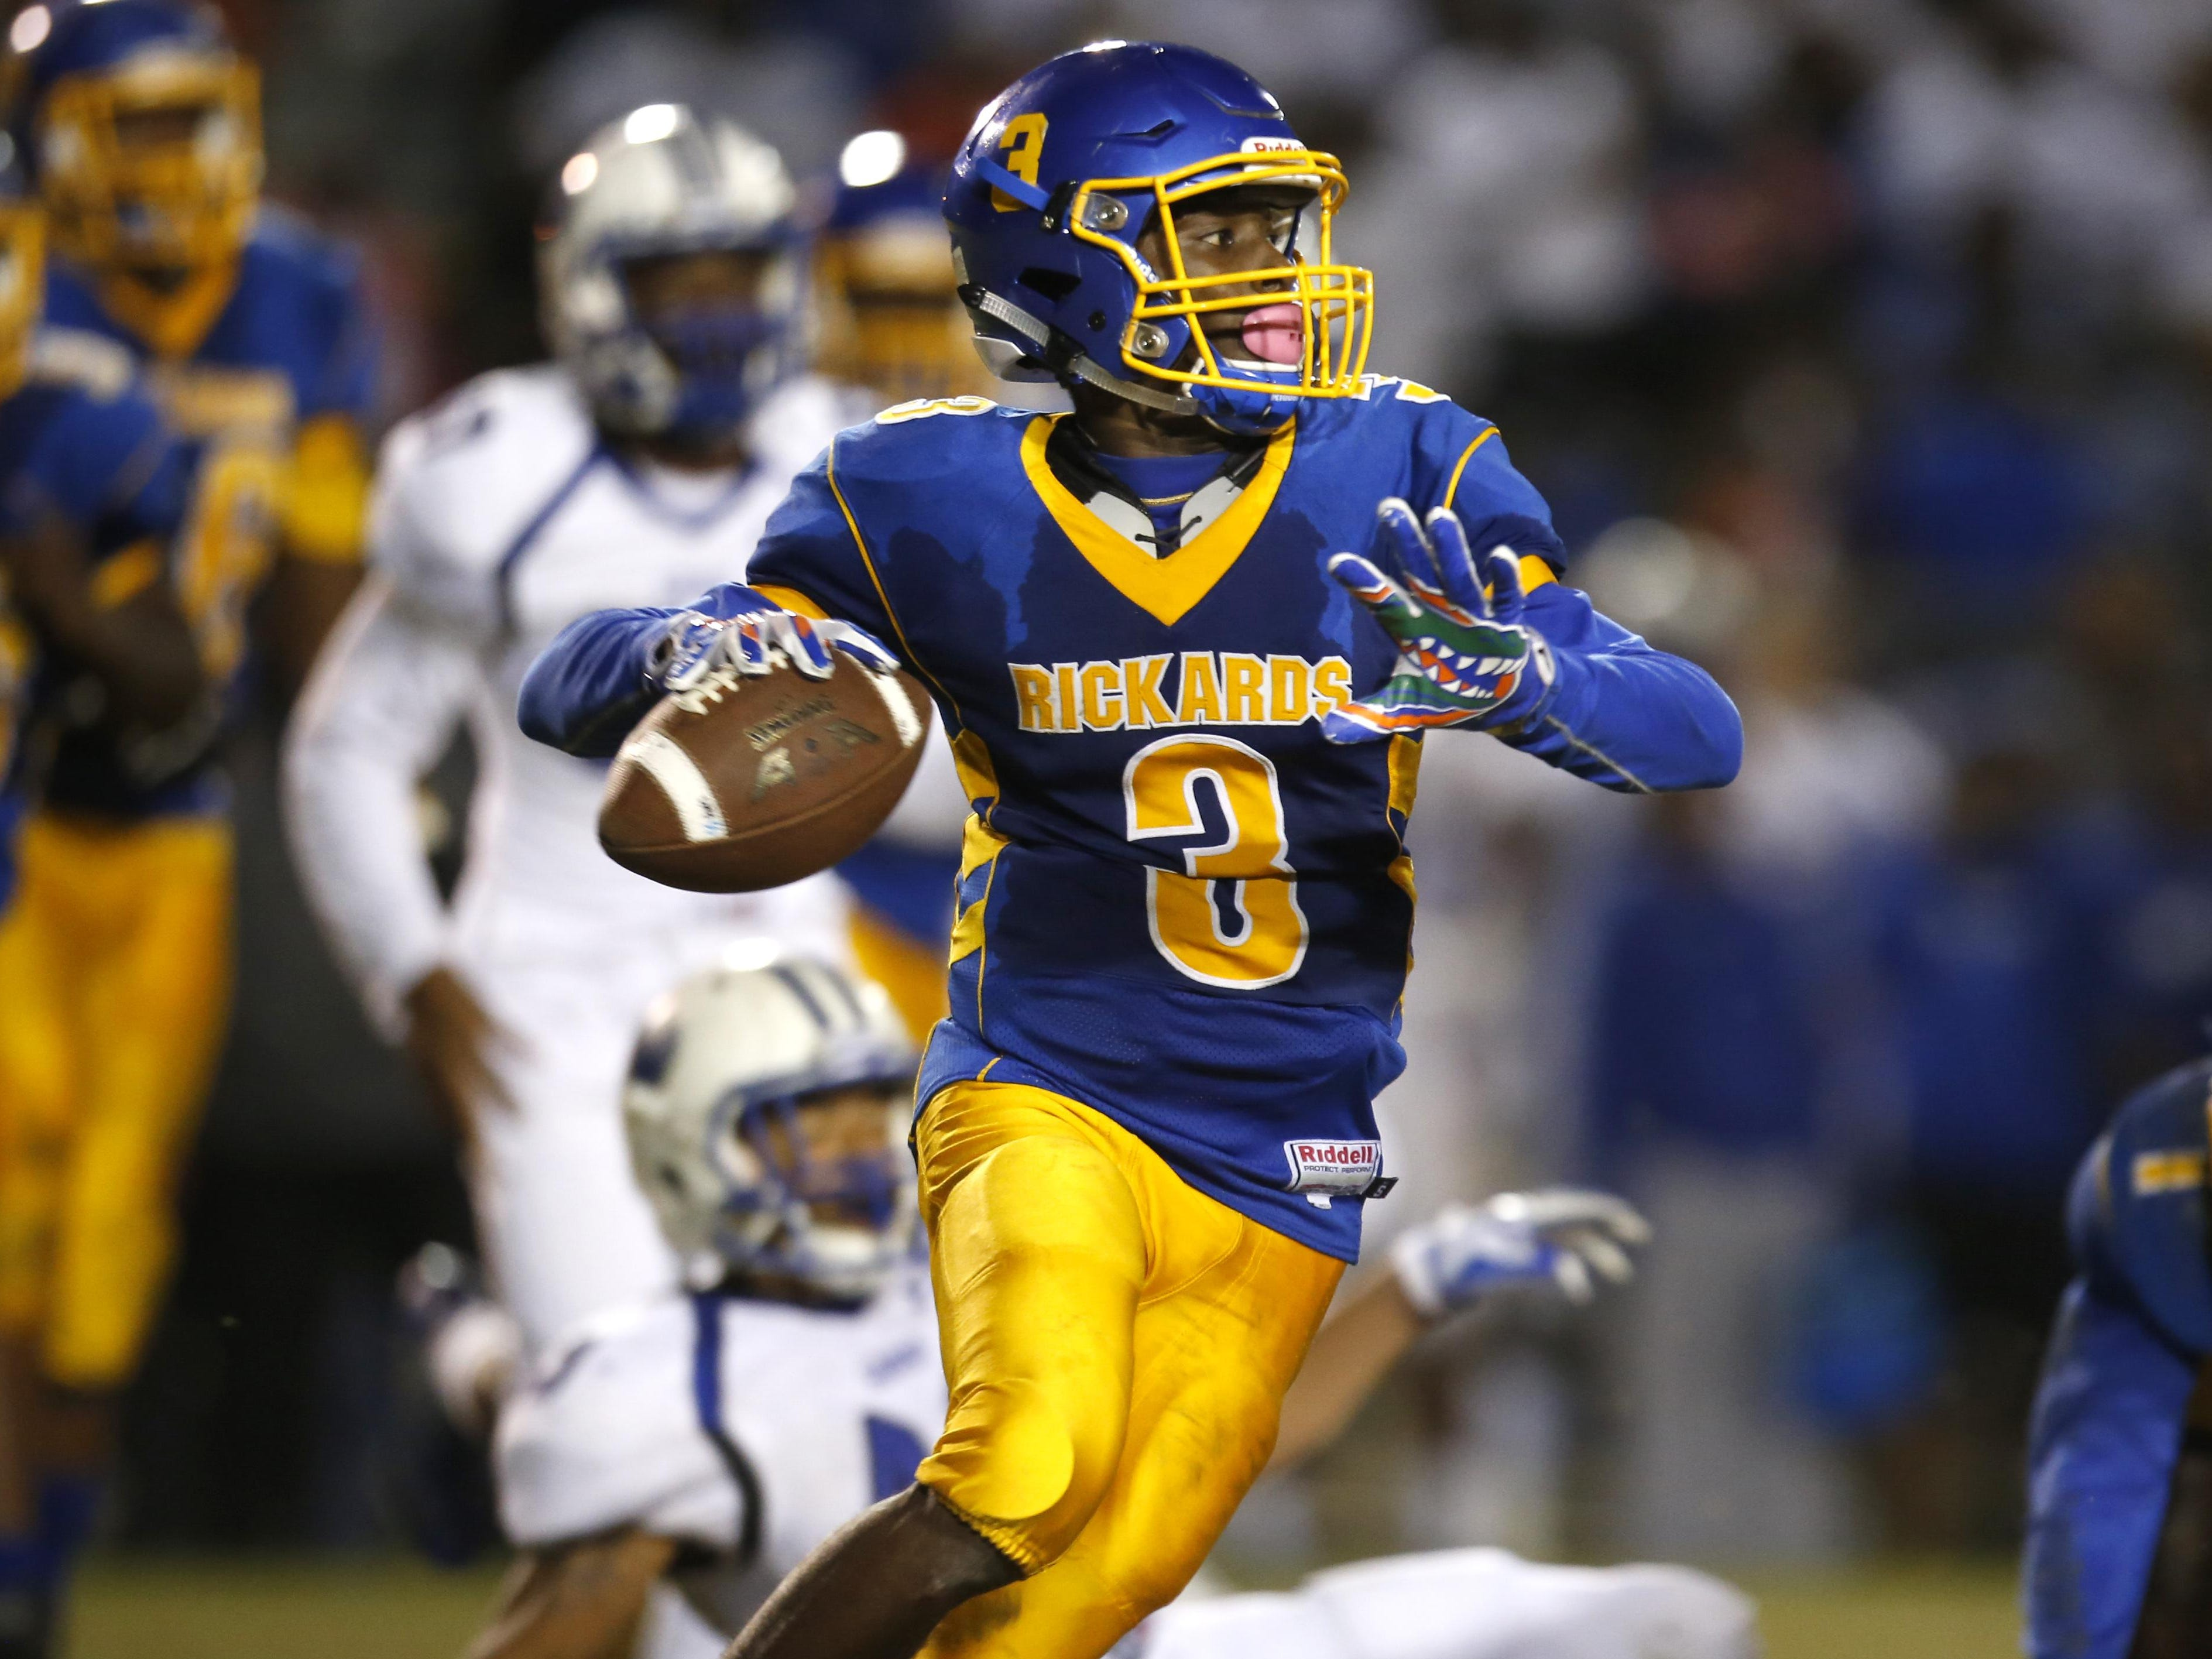 Rickards sophomore Marcus Riley scampered and passed his way to 556 yards of offense and seven combined touchdowns in a 49-42 win over Godby that gave the Raiders a spot in the playoffs and a city title.